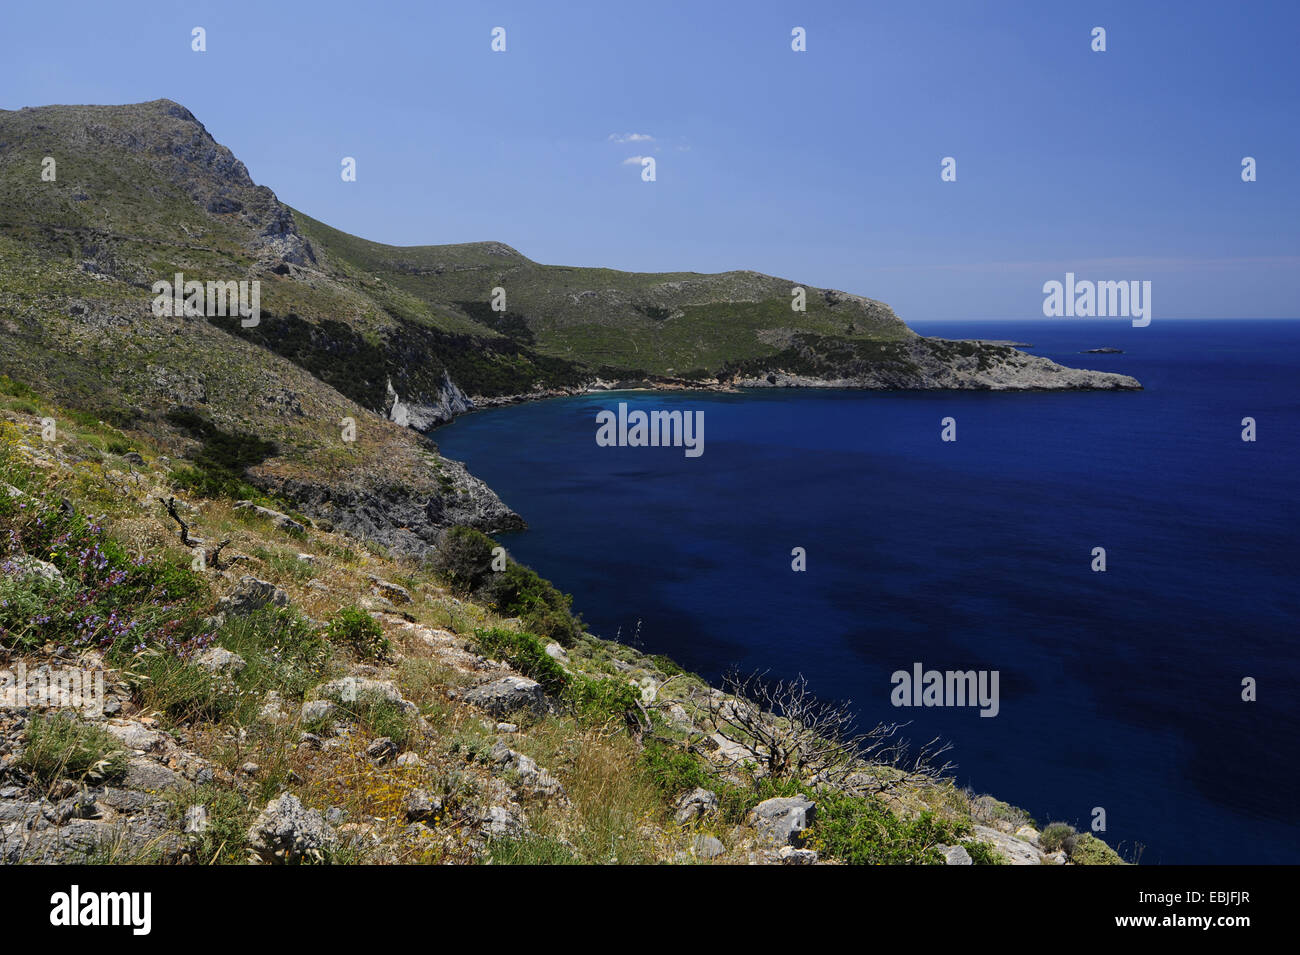 Kythira Greece Stock Photos Kythira Greece Stock Images Alamy